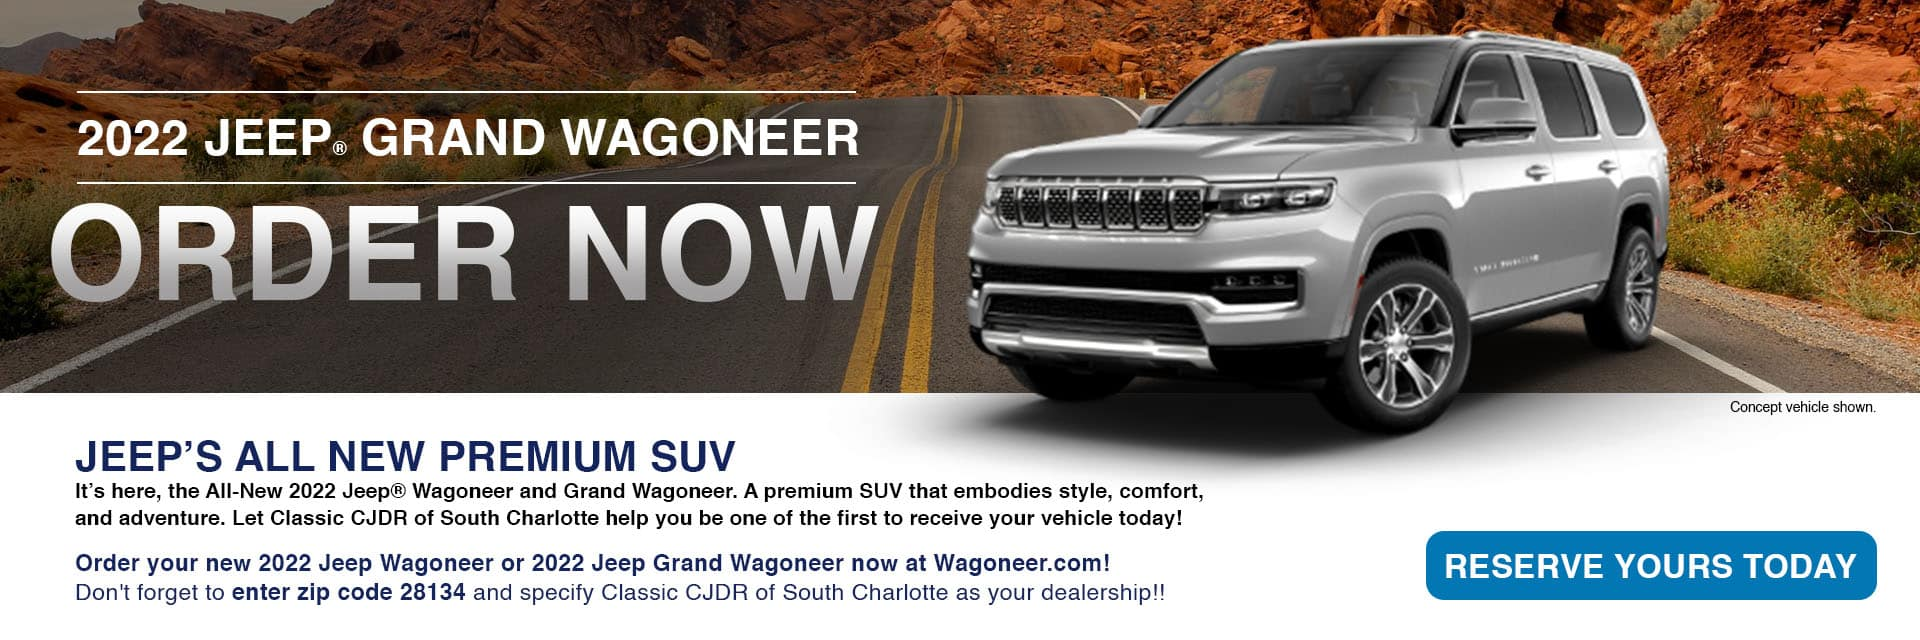 Wagoneer Email Sections1920x640 (1)